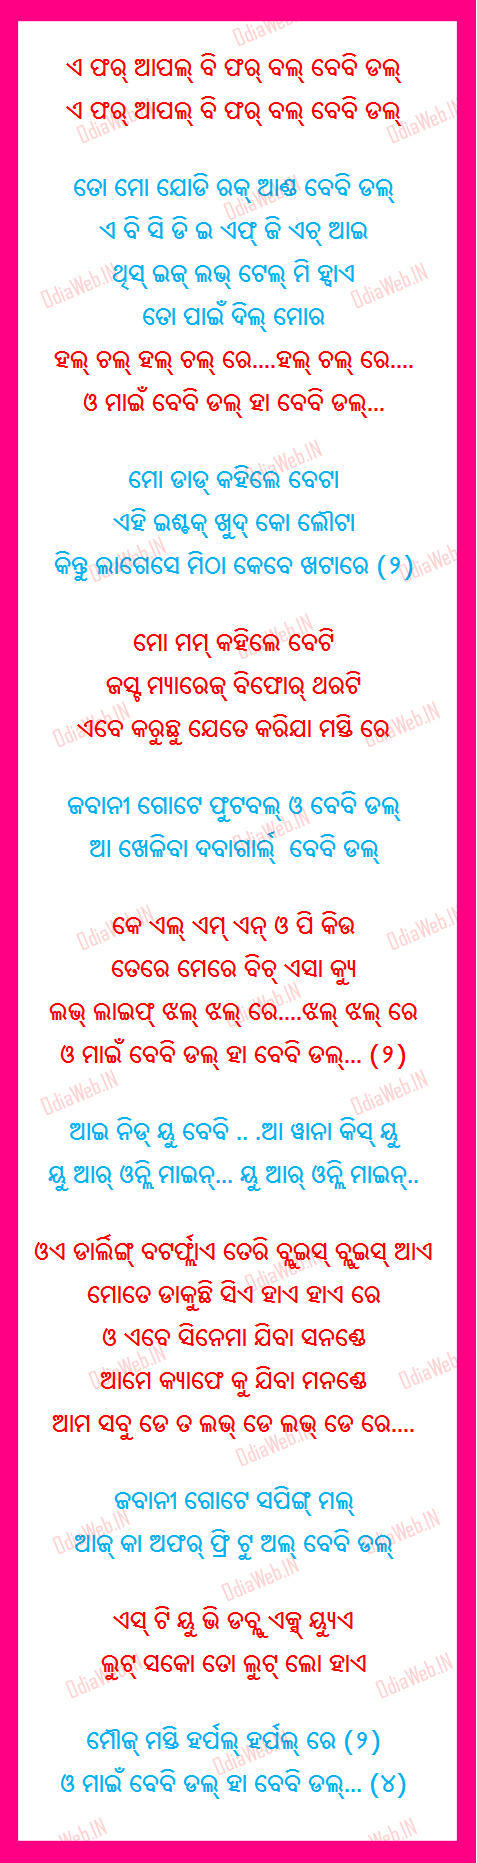 odia-film-college-time-song-lyrics-baby-doll